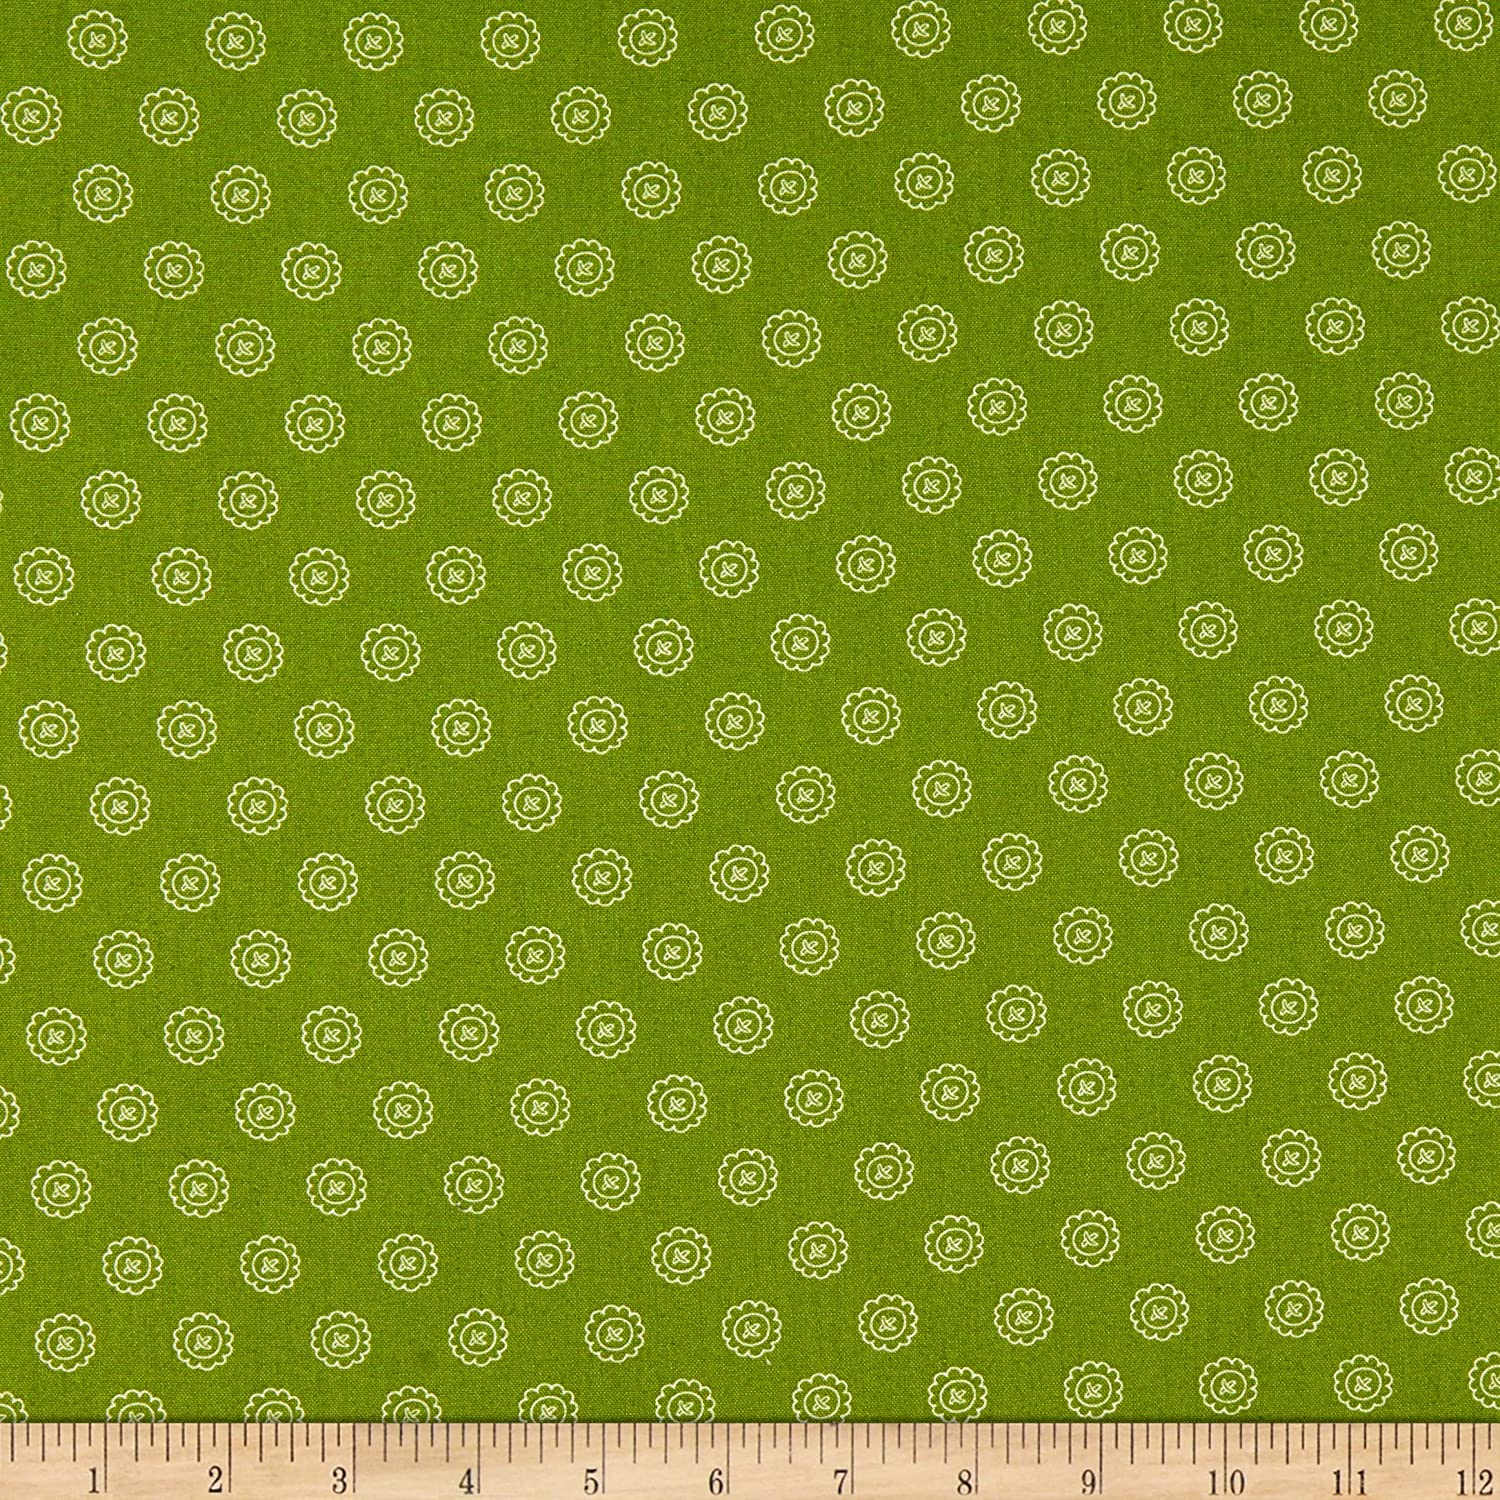 Maywood Studio Spellcaster's Garden Single Button Green Quilt Fabric By The Yard